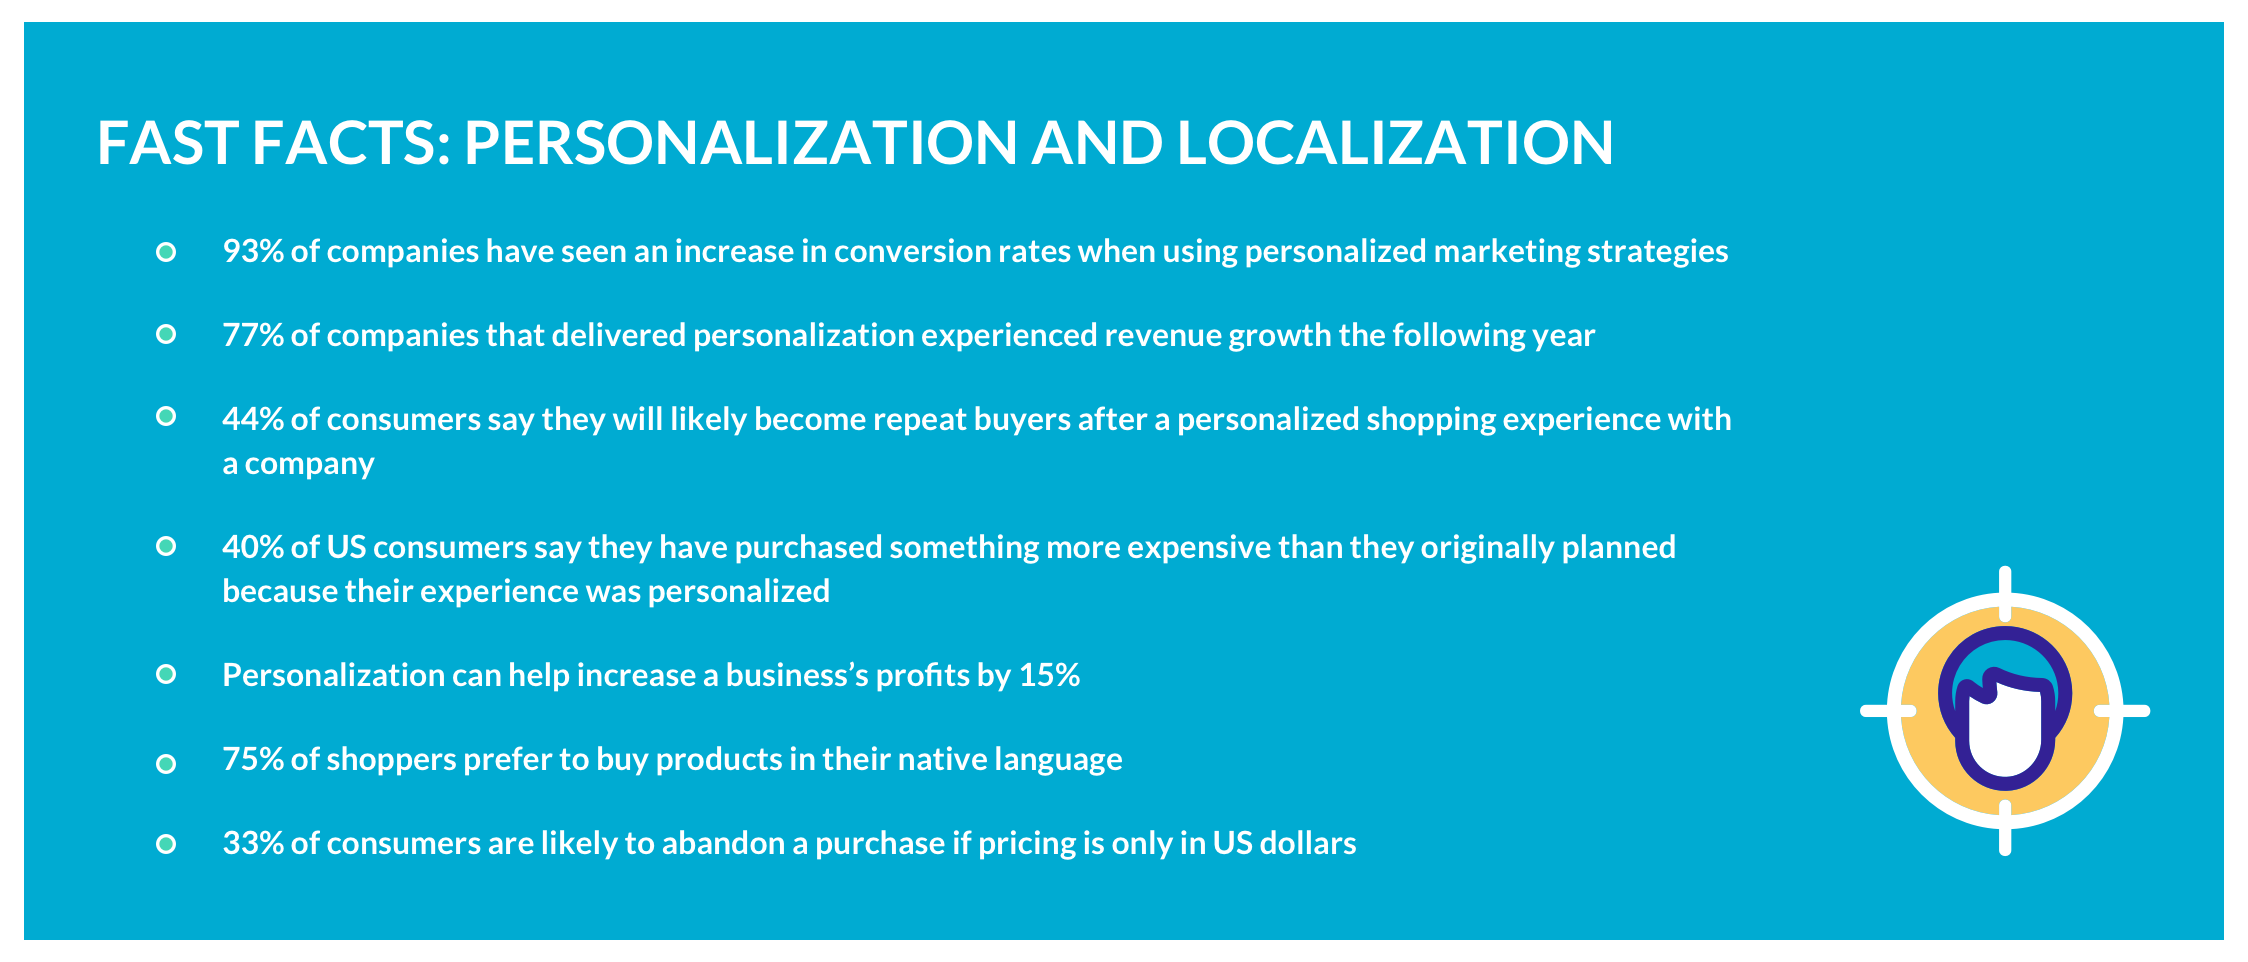 fast facts about personalization and localization